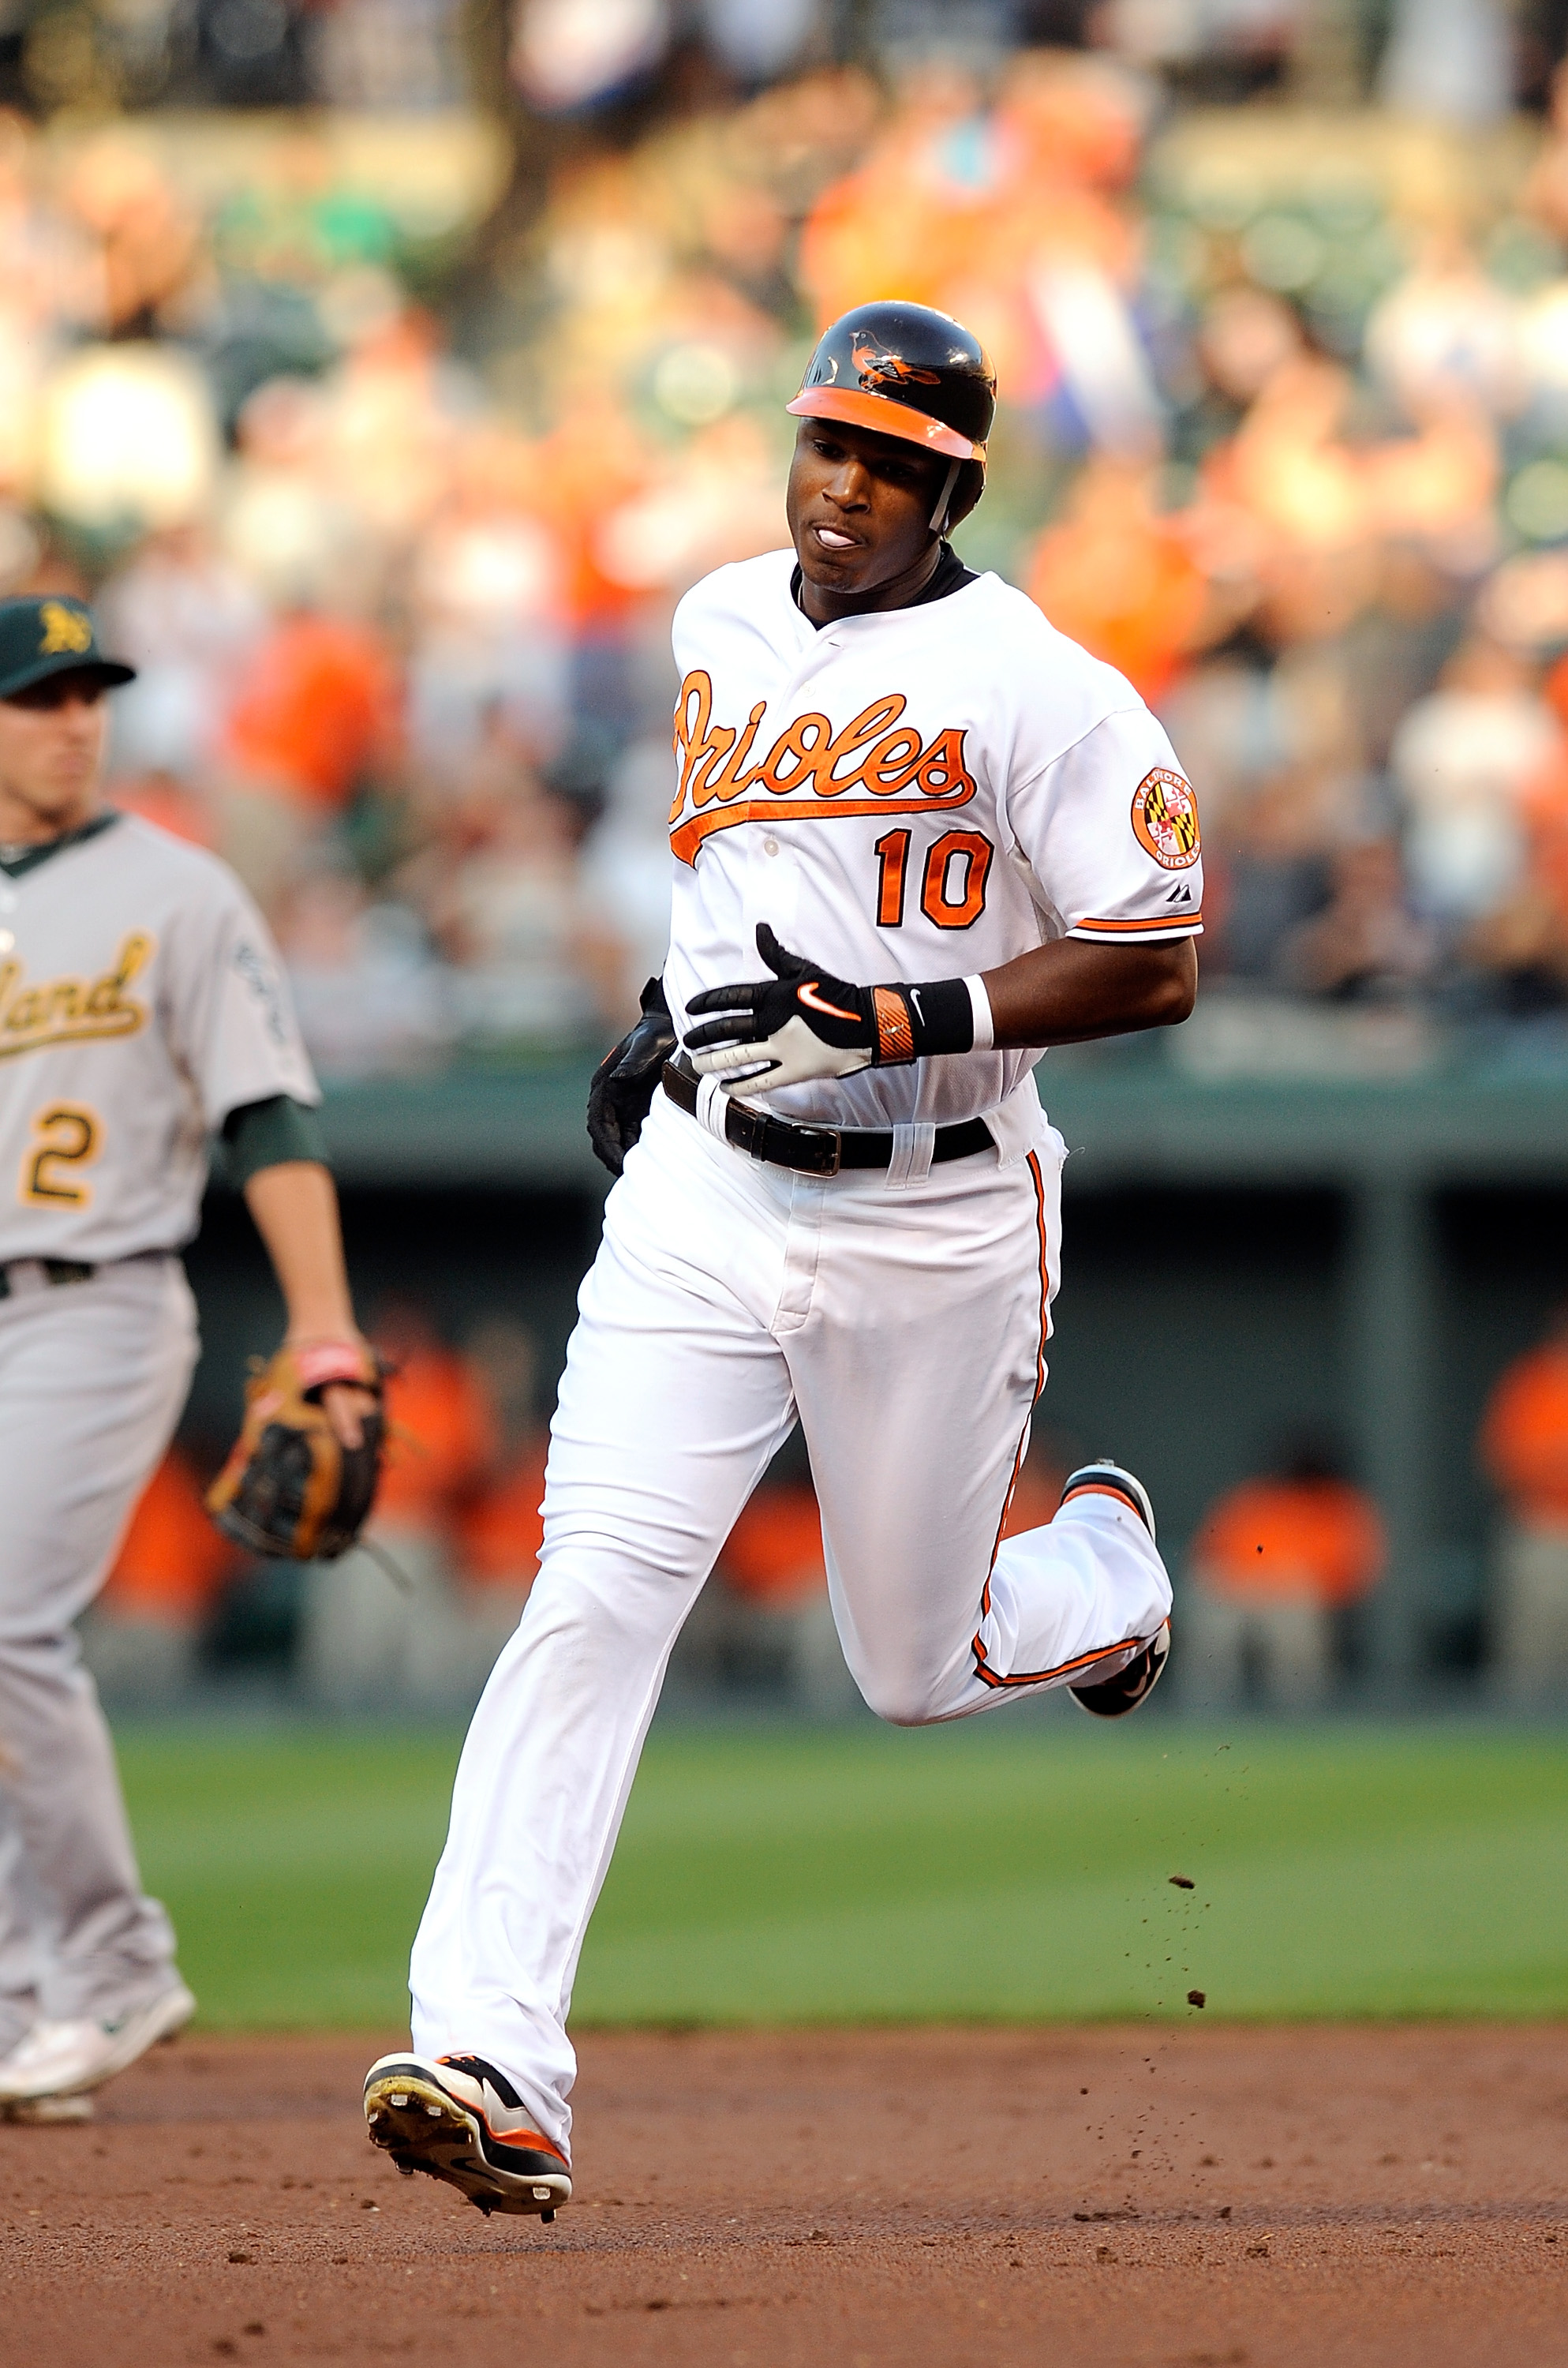 BALTIMORE - JUNE 30:  Adam Jones #10 of the Baltimore Orioles rounds the bases after hitting a home run in the second inning against the Oakland Athletics at Camden Yards on June 30, 2010 in Baltimore, Maryland.  (Photo by Greg Fiume/Getty Images)